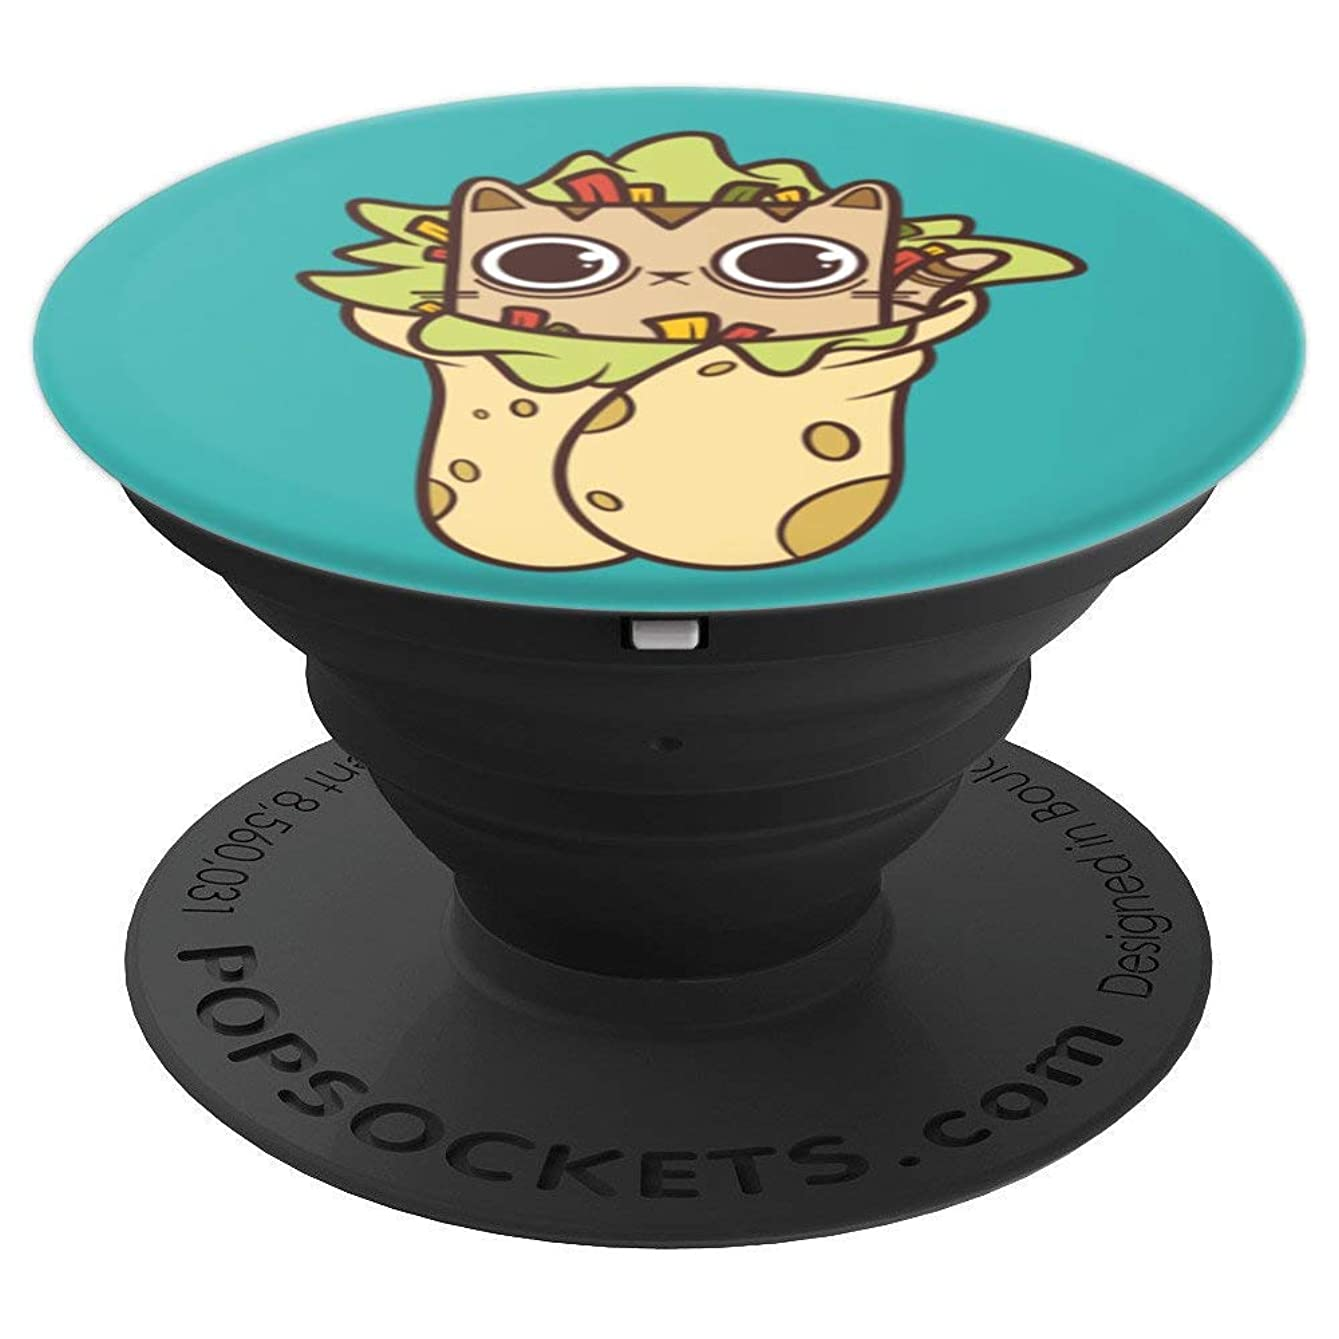 Cute Kawaii Purrito: Burrito Taco Cat by Fudo Cats - PopSockets Grip and Stand for Phones and Tablets haxdyd072676